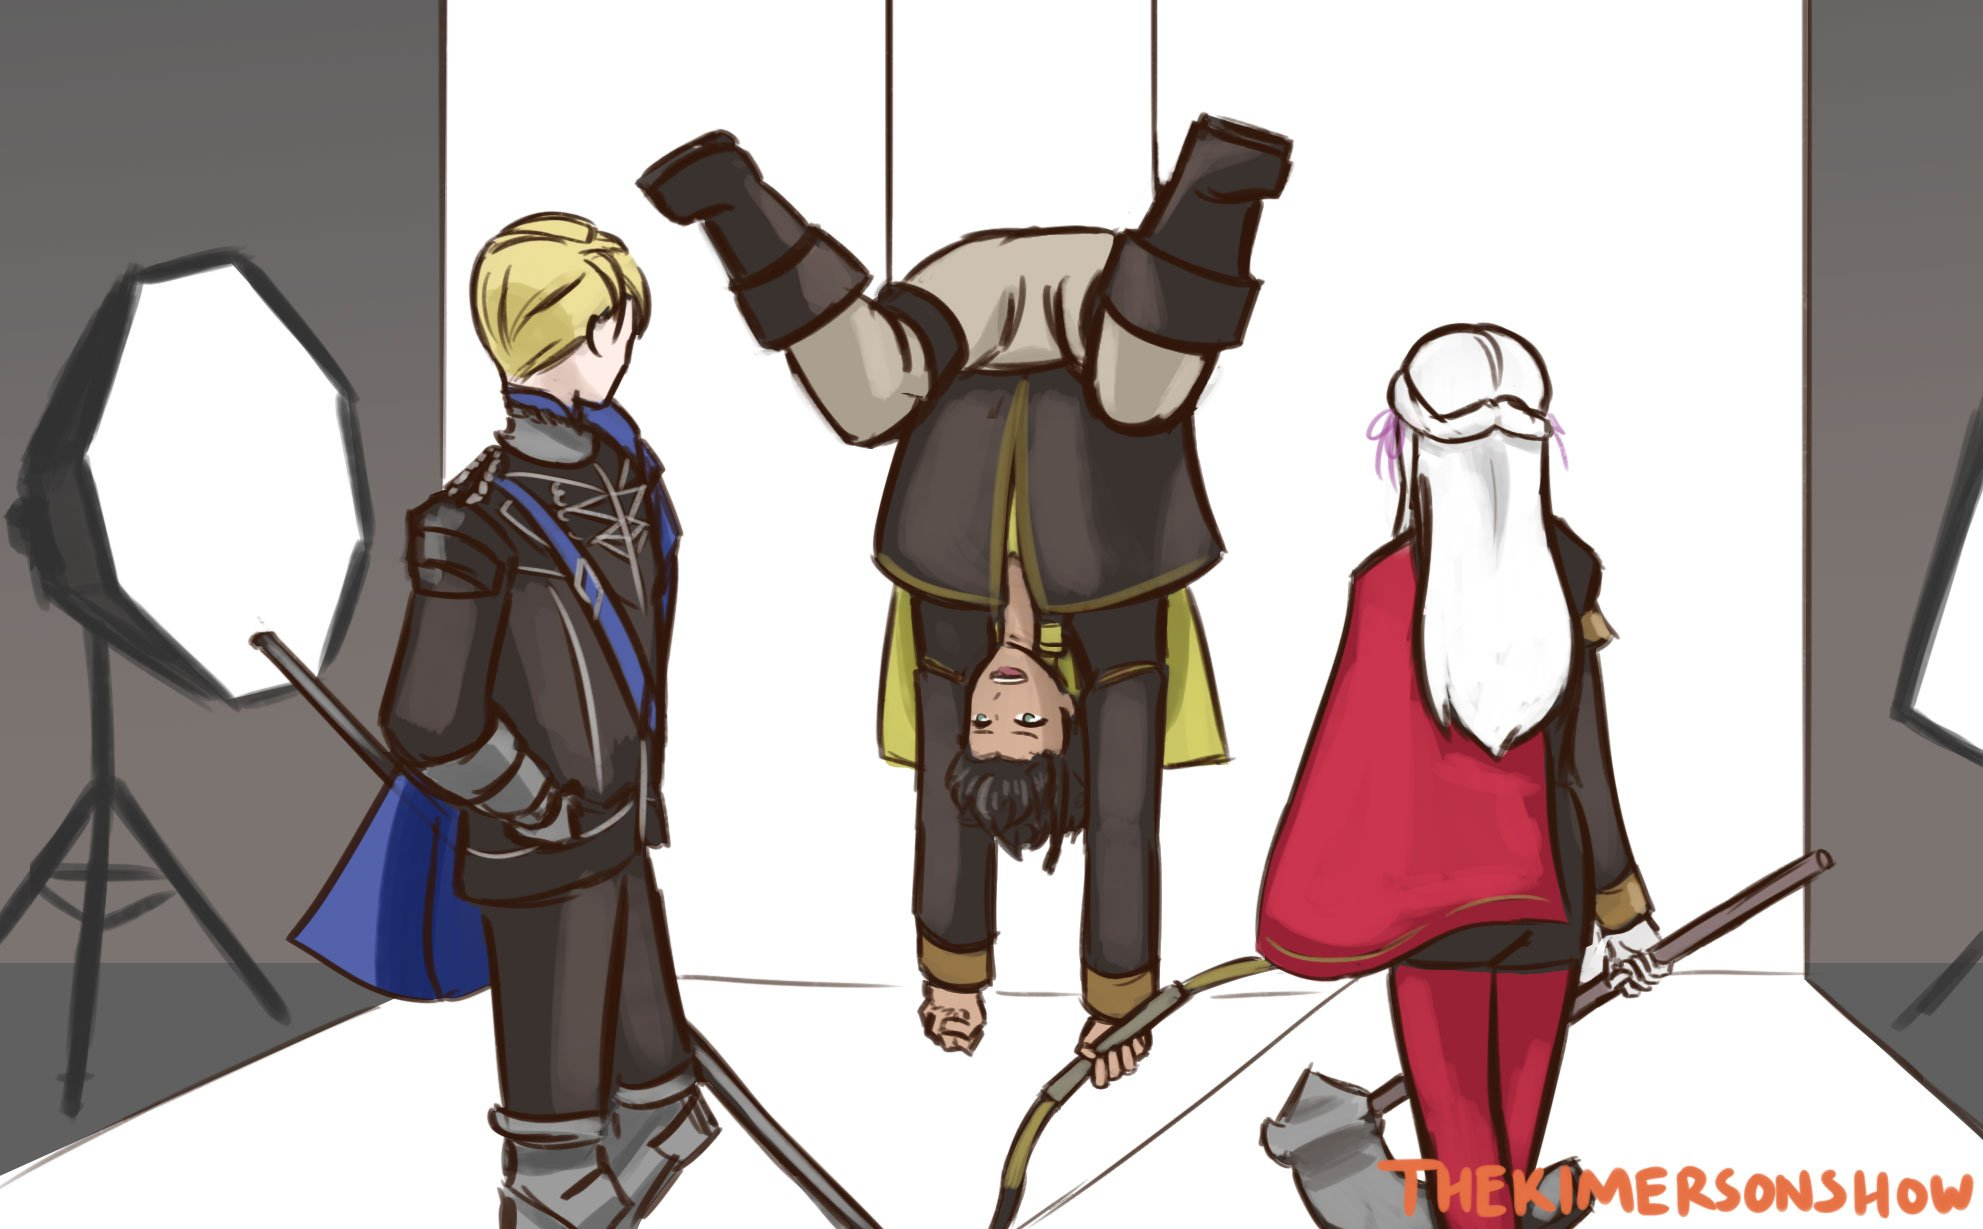 I Bet It Was Claude S Idea To Be Upside Down When They Shot The